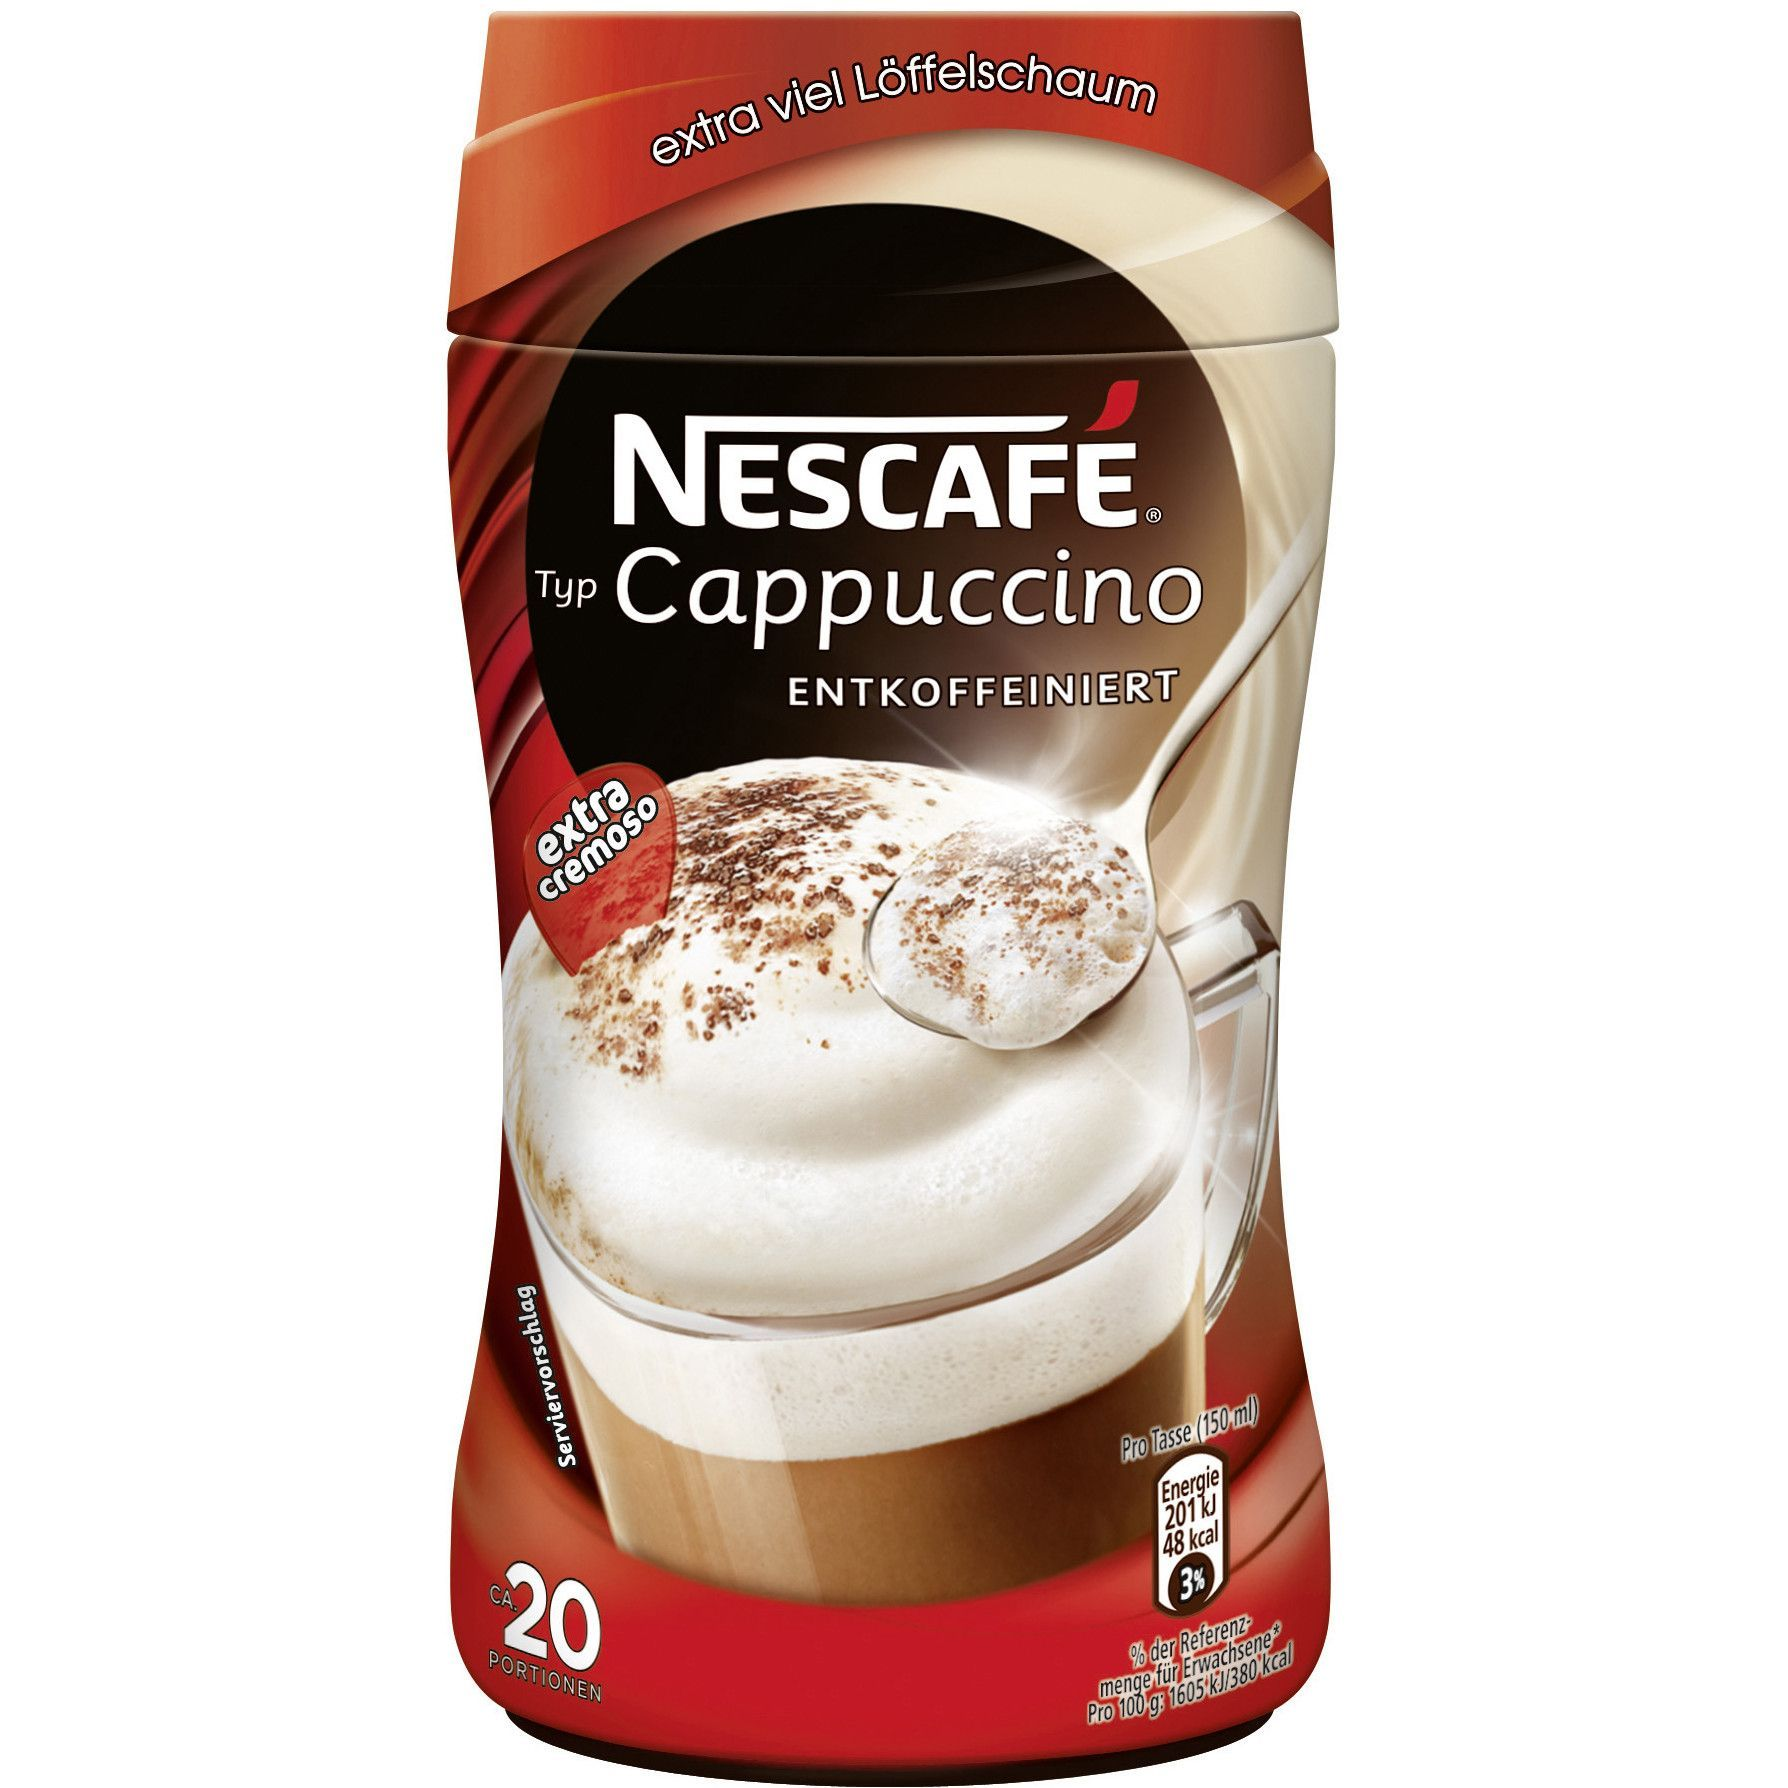 in USA Nescafe Cappuccino EXTRA CREAMY DECAF 250g 1